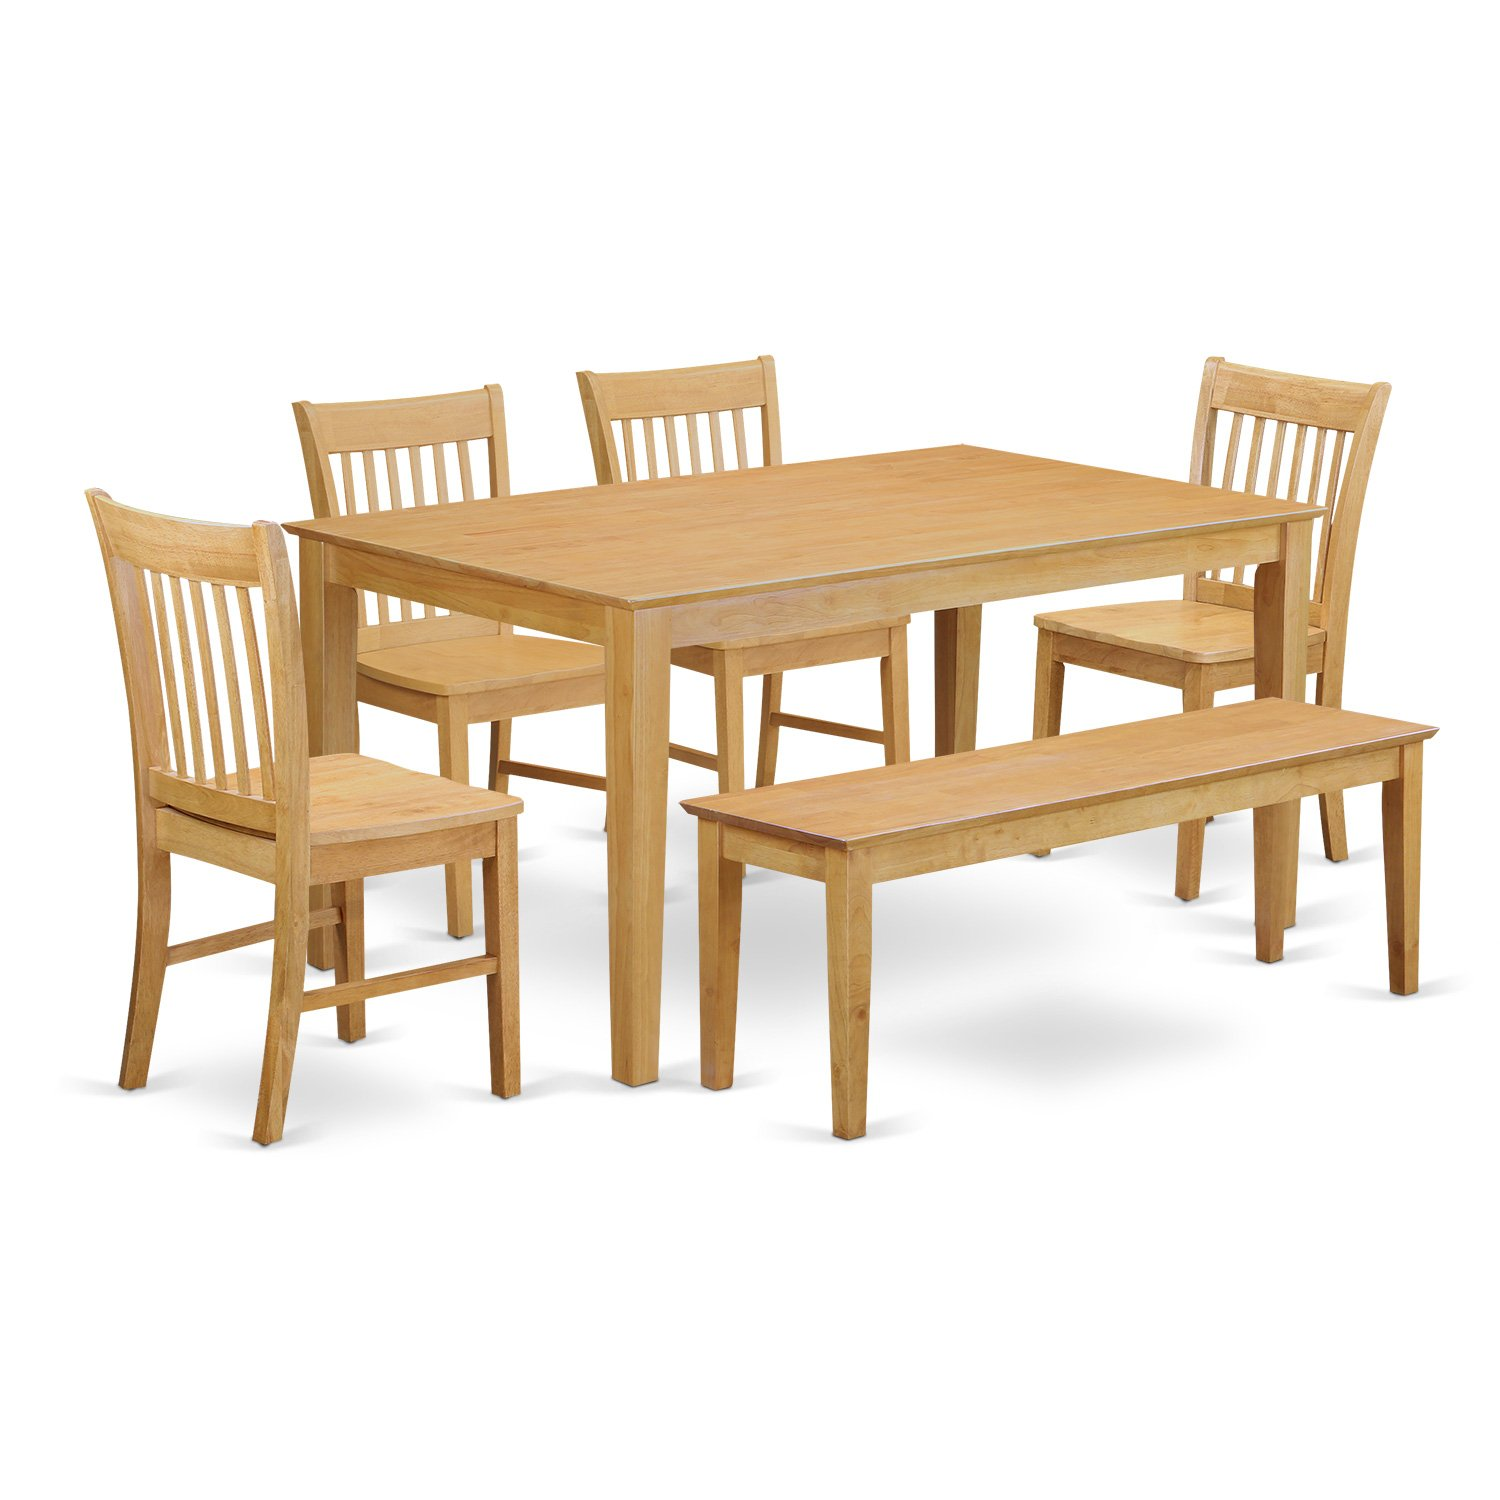 Amazon.com East West Furniture CANO6-OAK-W 6-Piece Dining Table Set Kitchen u0026 Dining  sc 1 st  Amazon.com : dining table set bench - Pezcame.Com